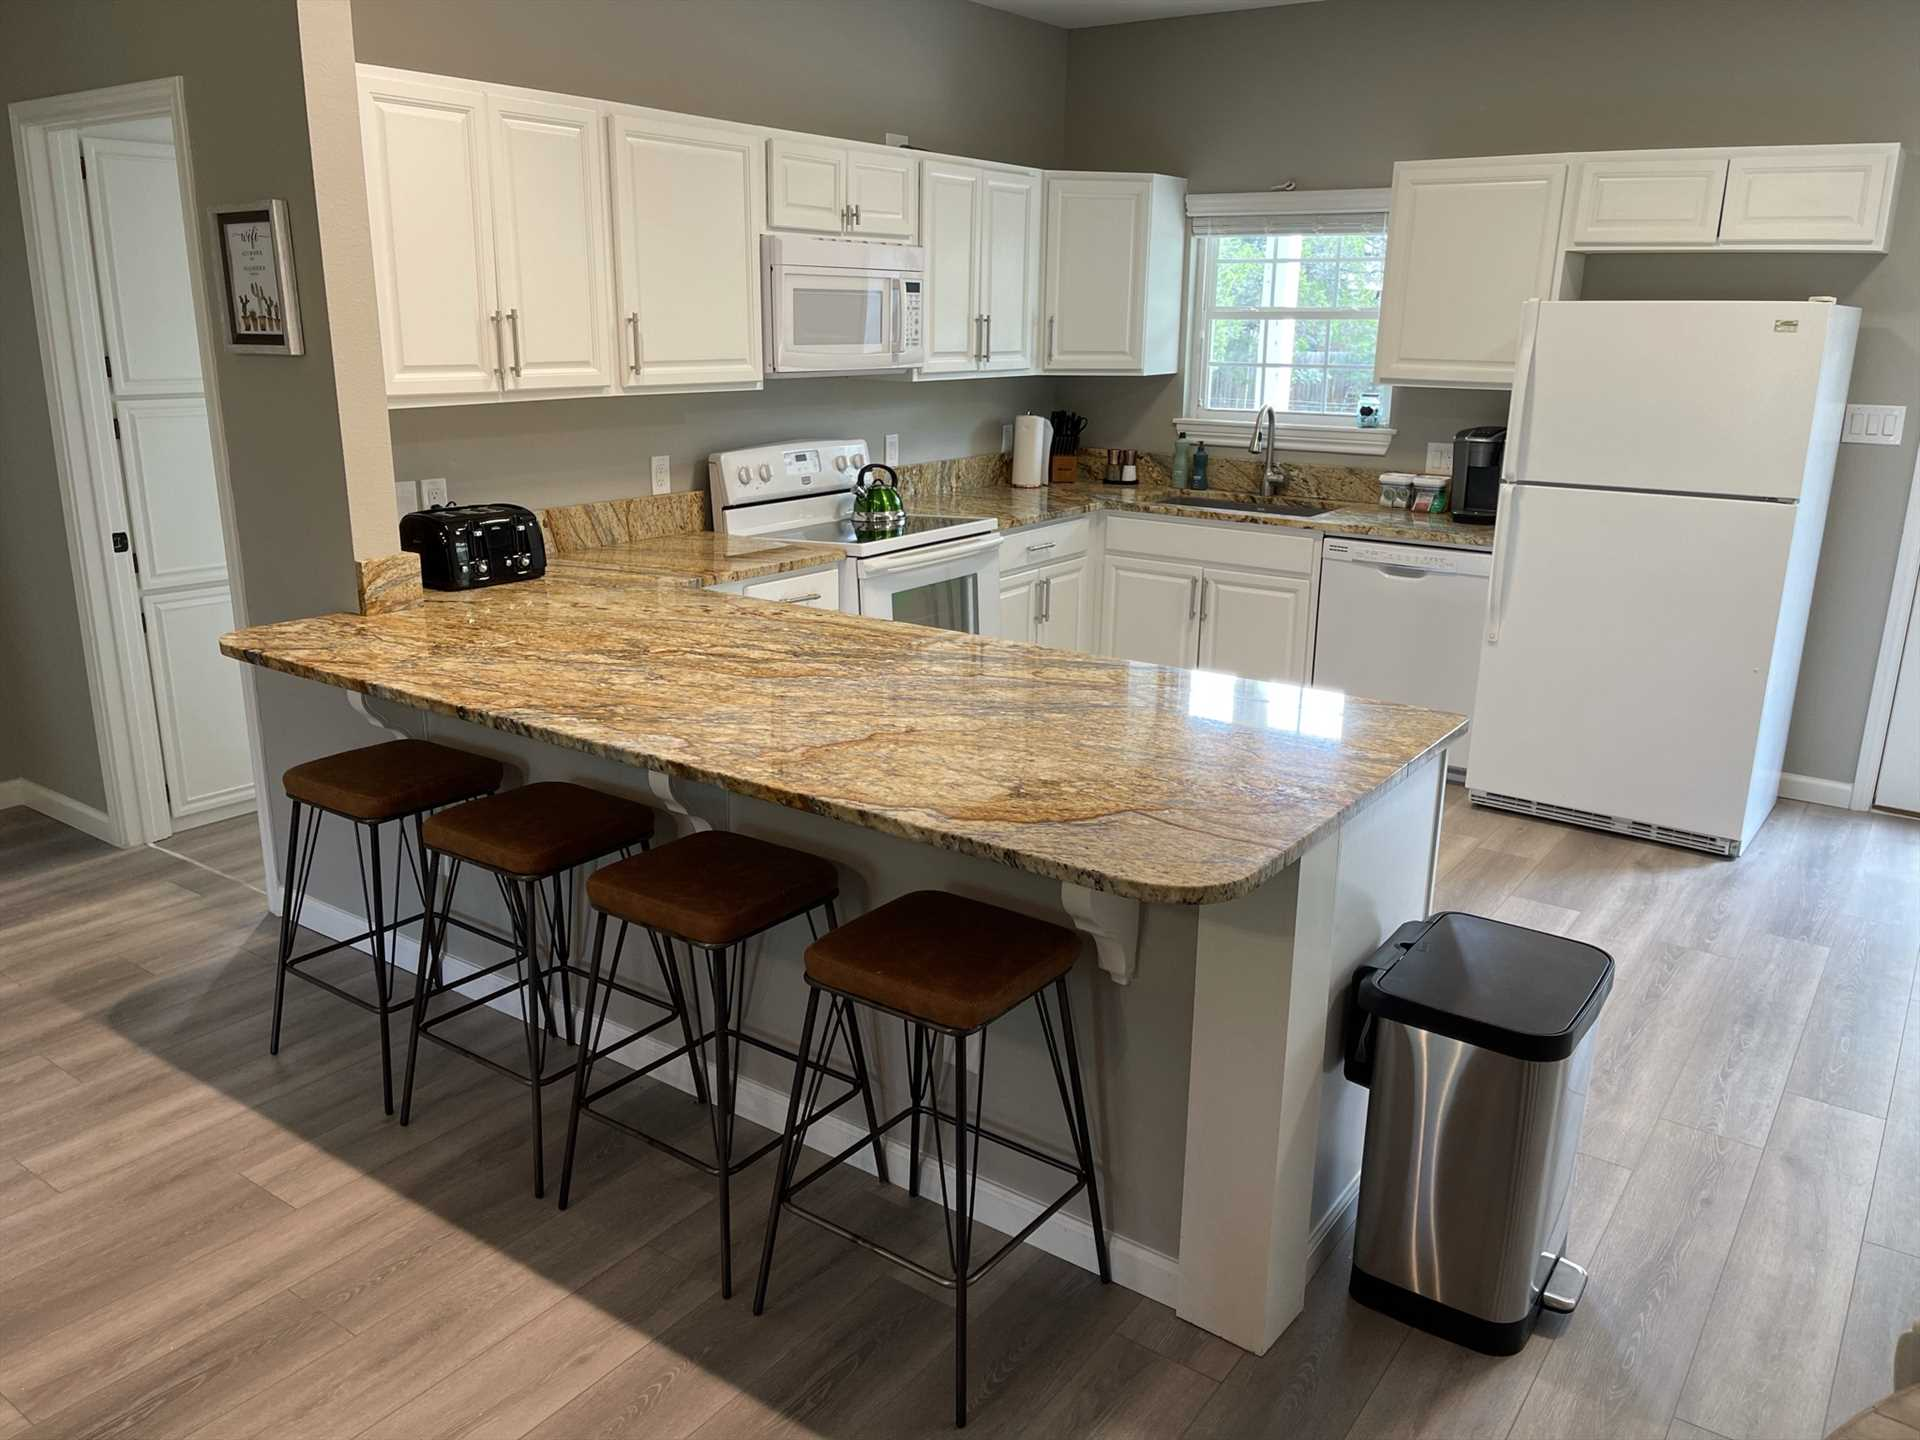 The modern kitchen features all the appliances, cookware, and serving ware you'll need, tons of counter space, and even bar seating so folks can chat while prepping meals.